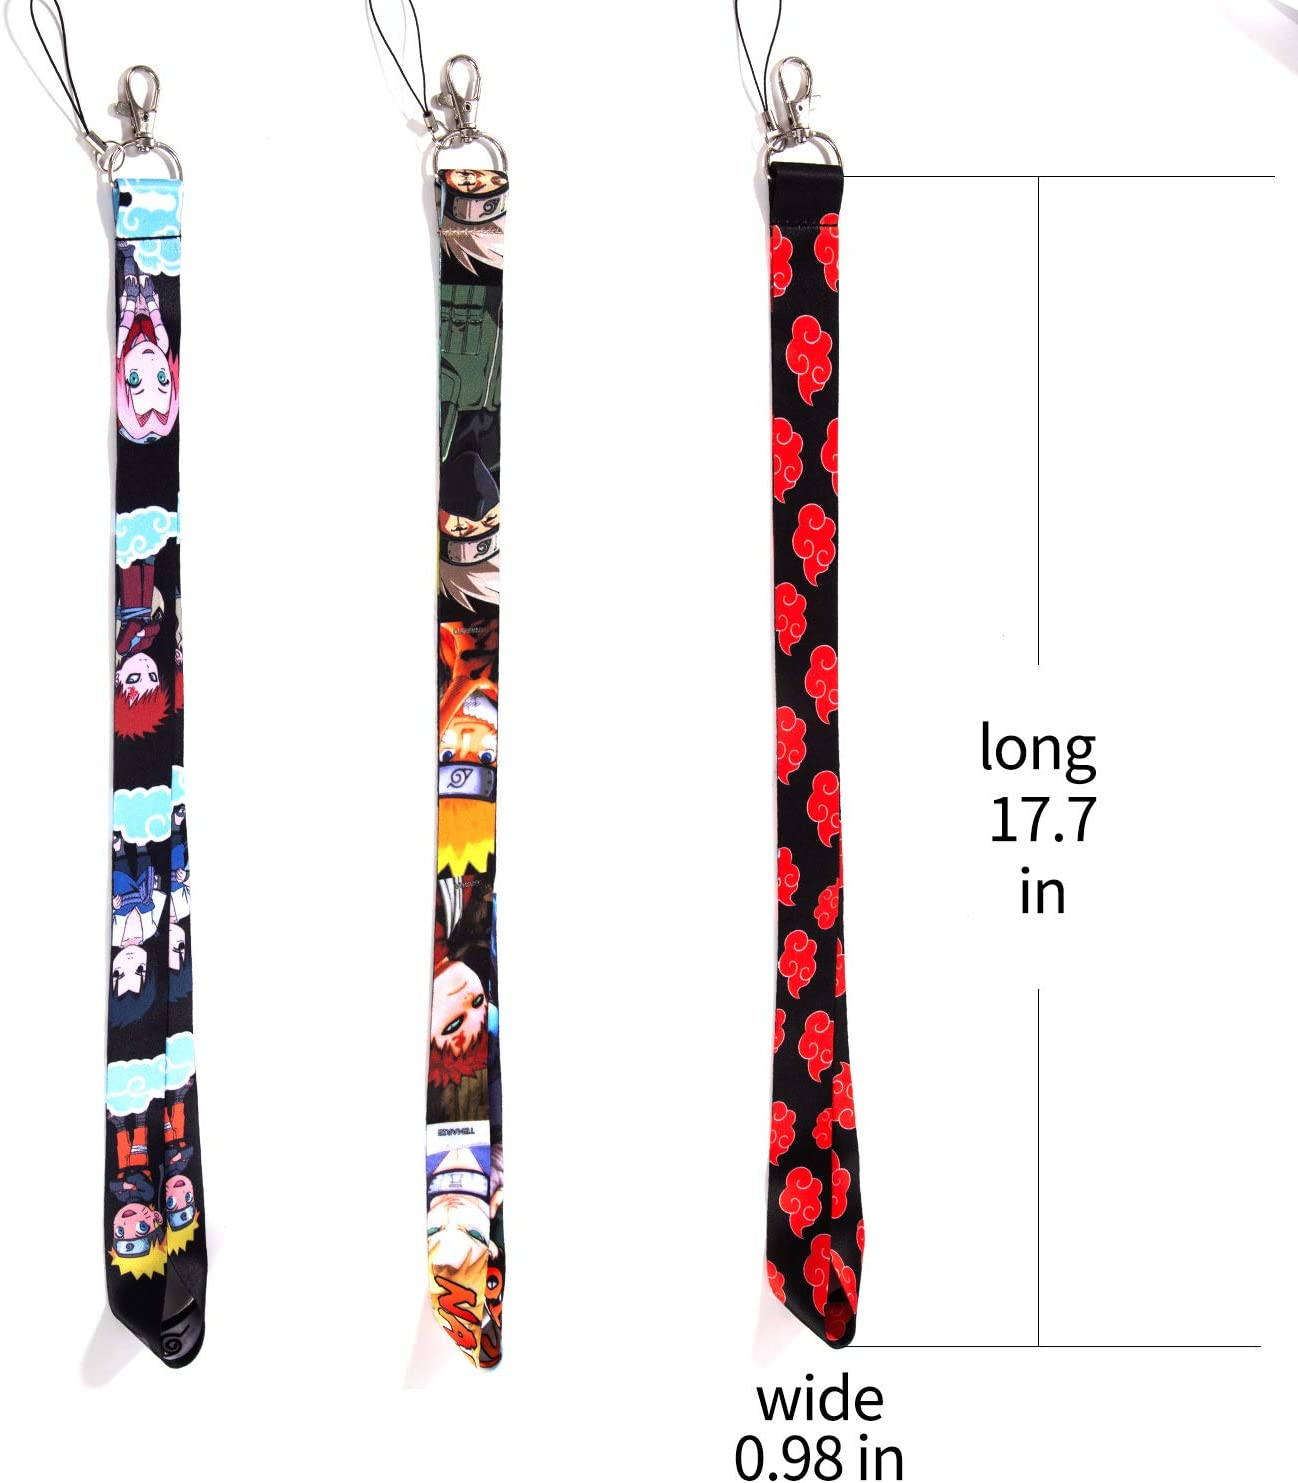 Naruto Anime Keychains,Keychain Lanyard,ID Holder for Badge,Anime Lanyard, 1 Red and Black